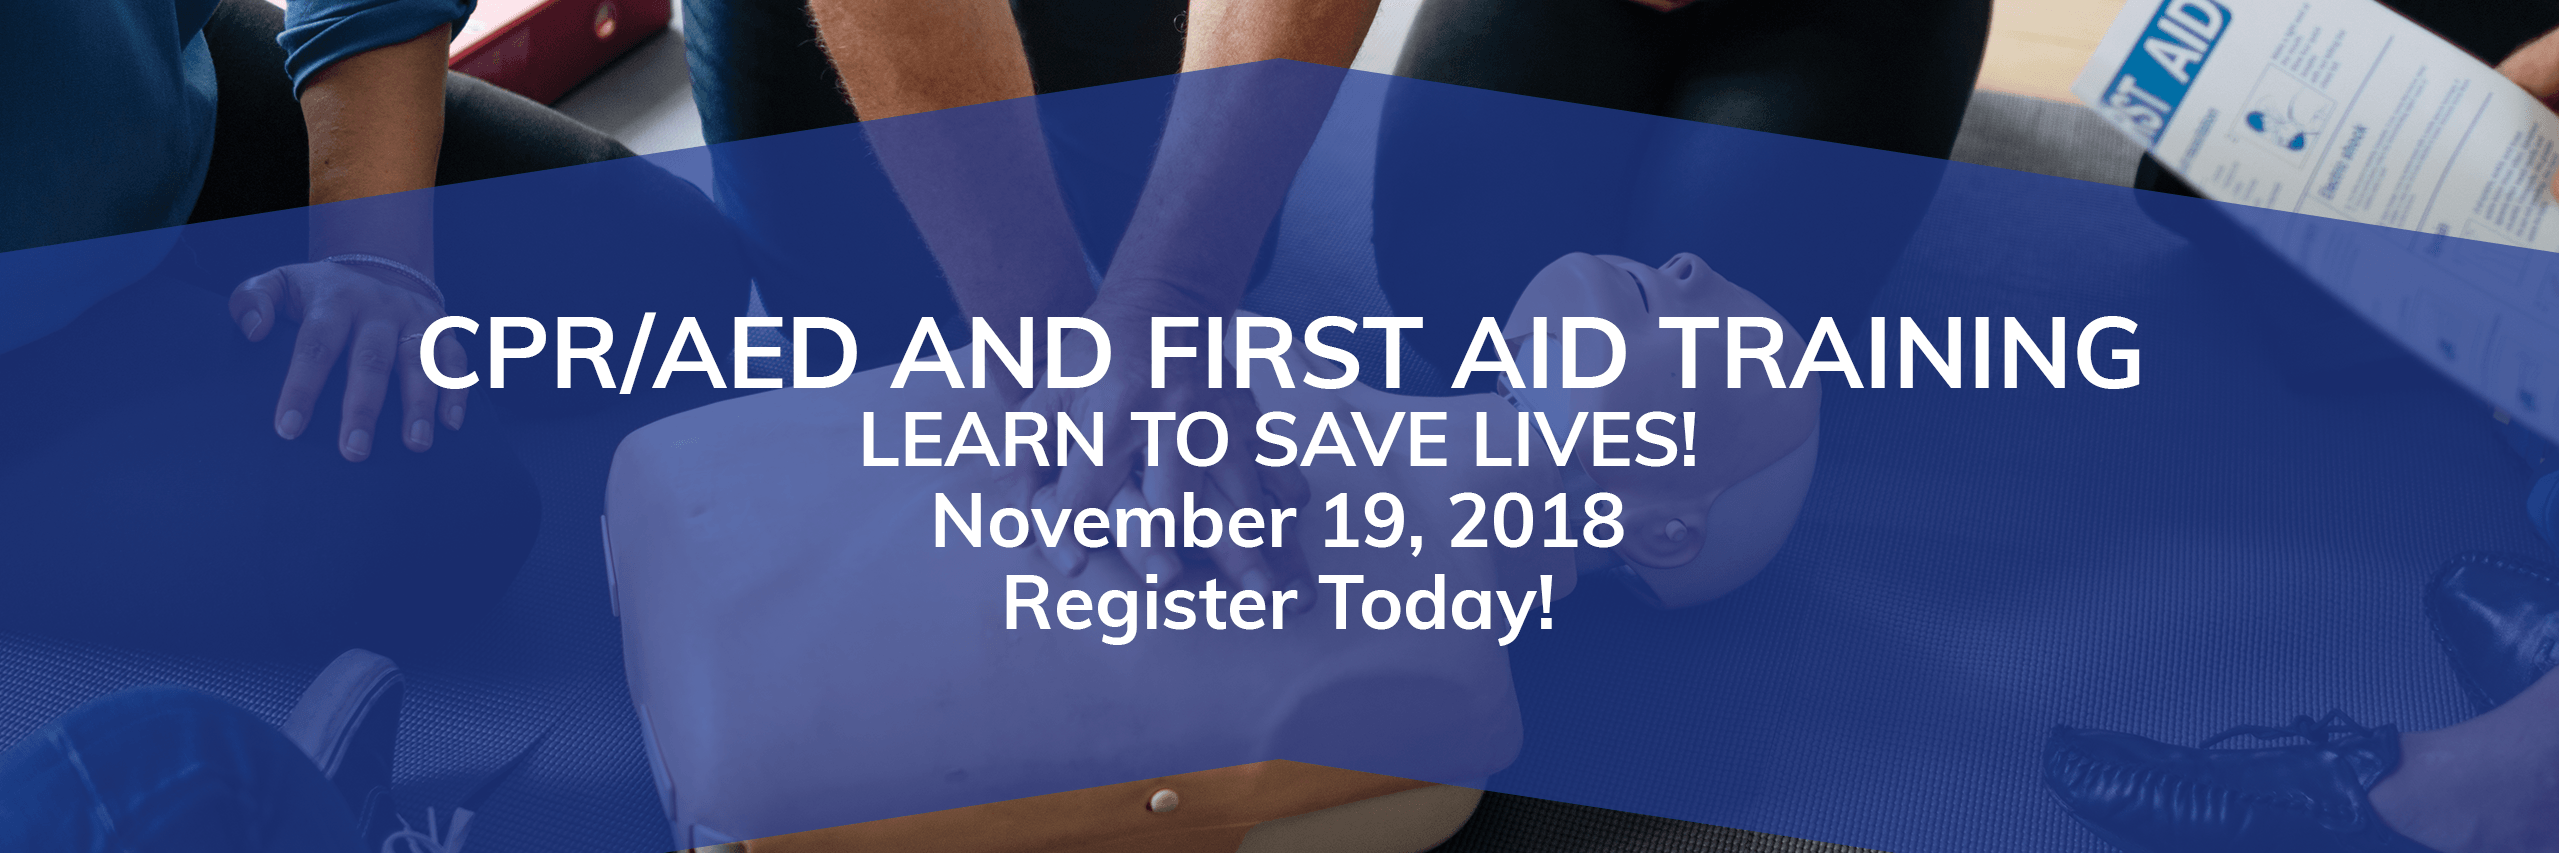 CPR First Aid_20181119_Website Banner